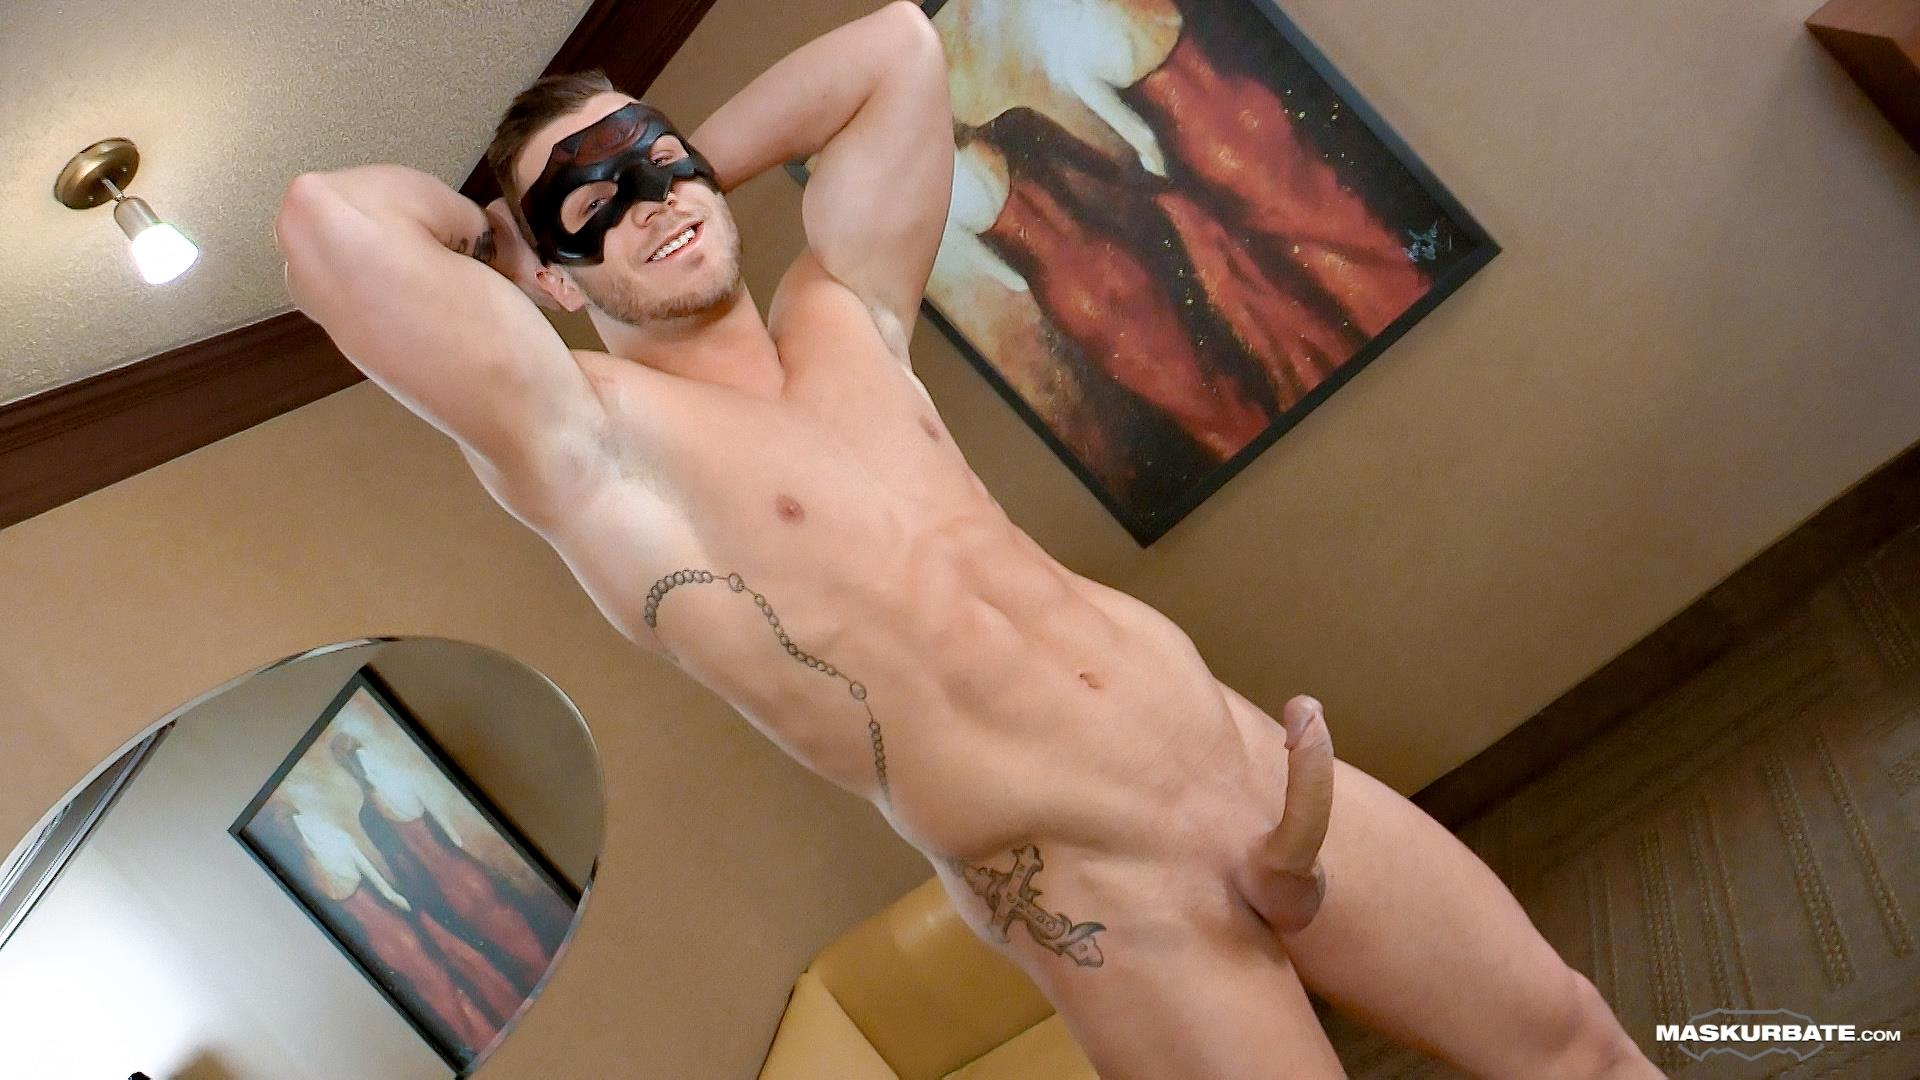 Maskurbate Mike Muscle Hunk With A Big Uncut Cock Jerking Off Amateur Gay Porn 08 Bi Curious Muscle Hunk With A Big Uncut Cock Auditions For Gay Porn